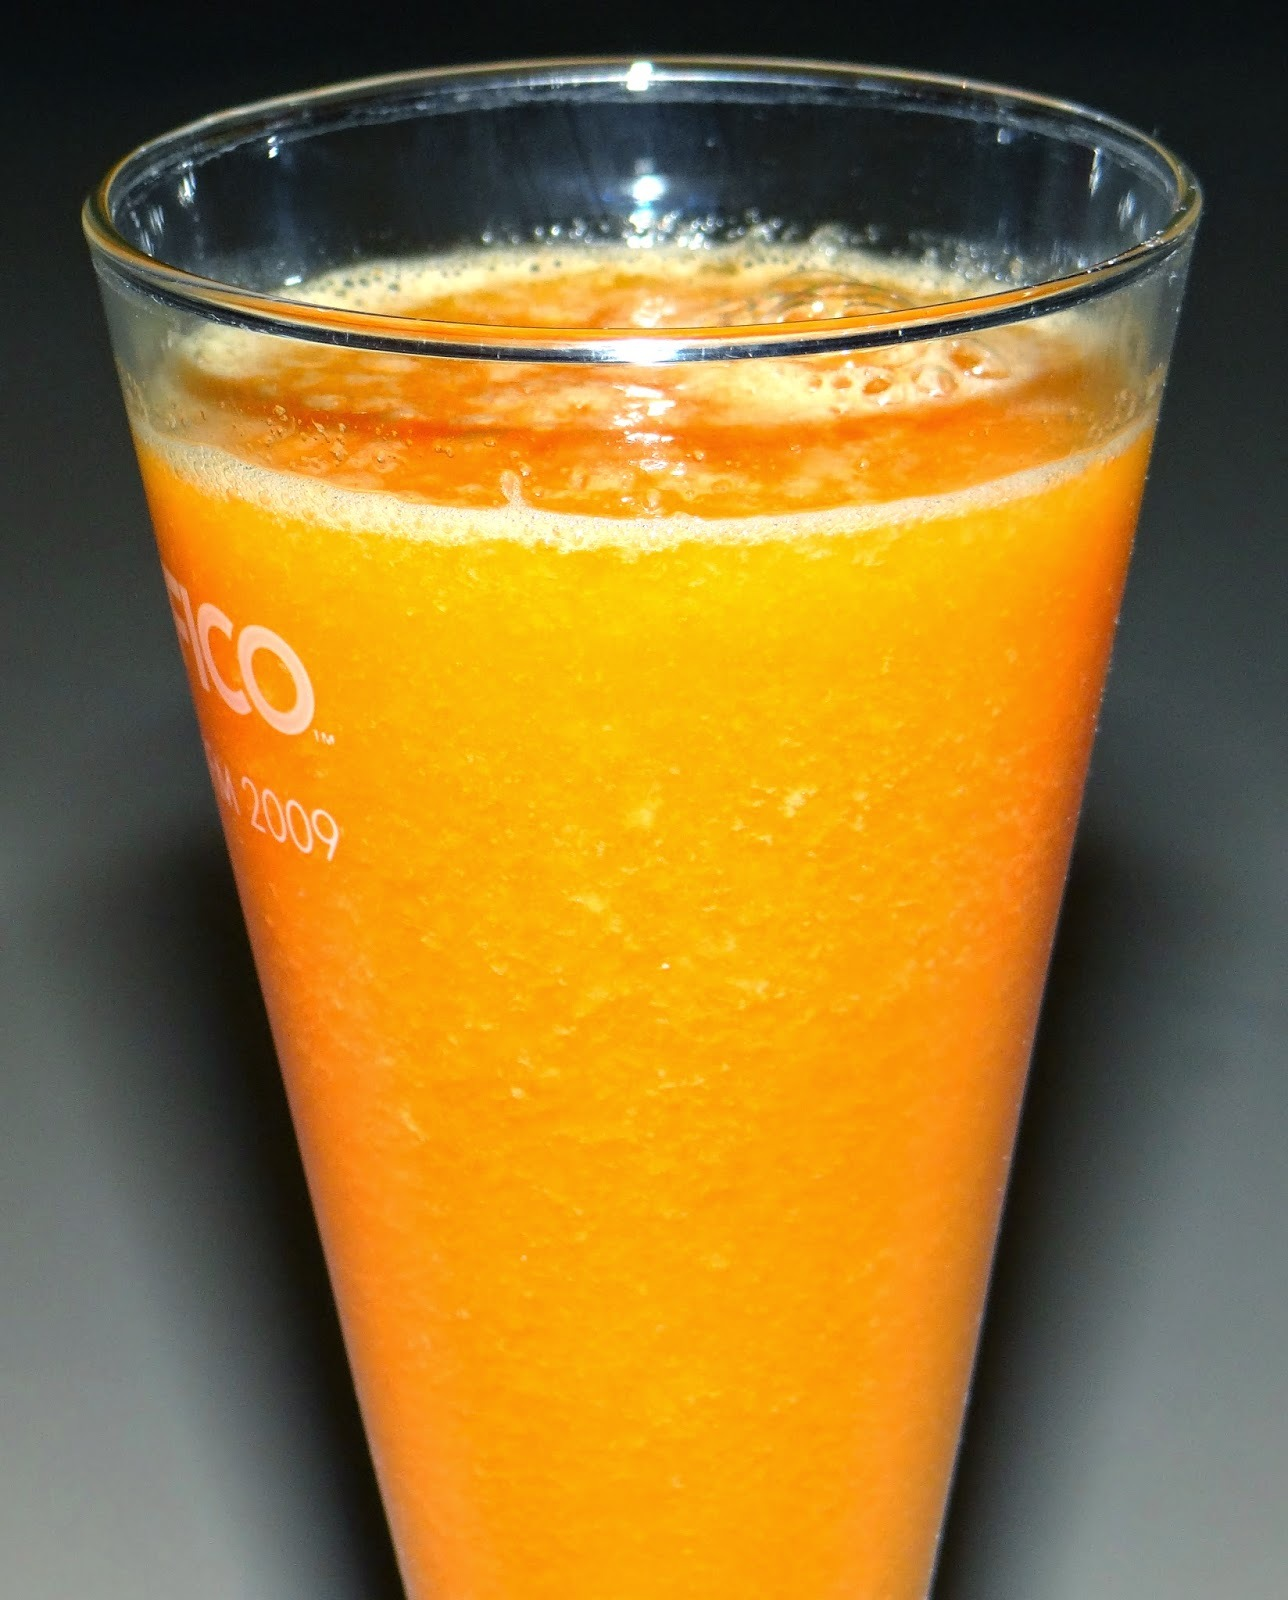 Ongee Papaya juice